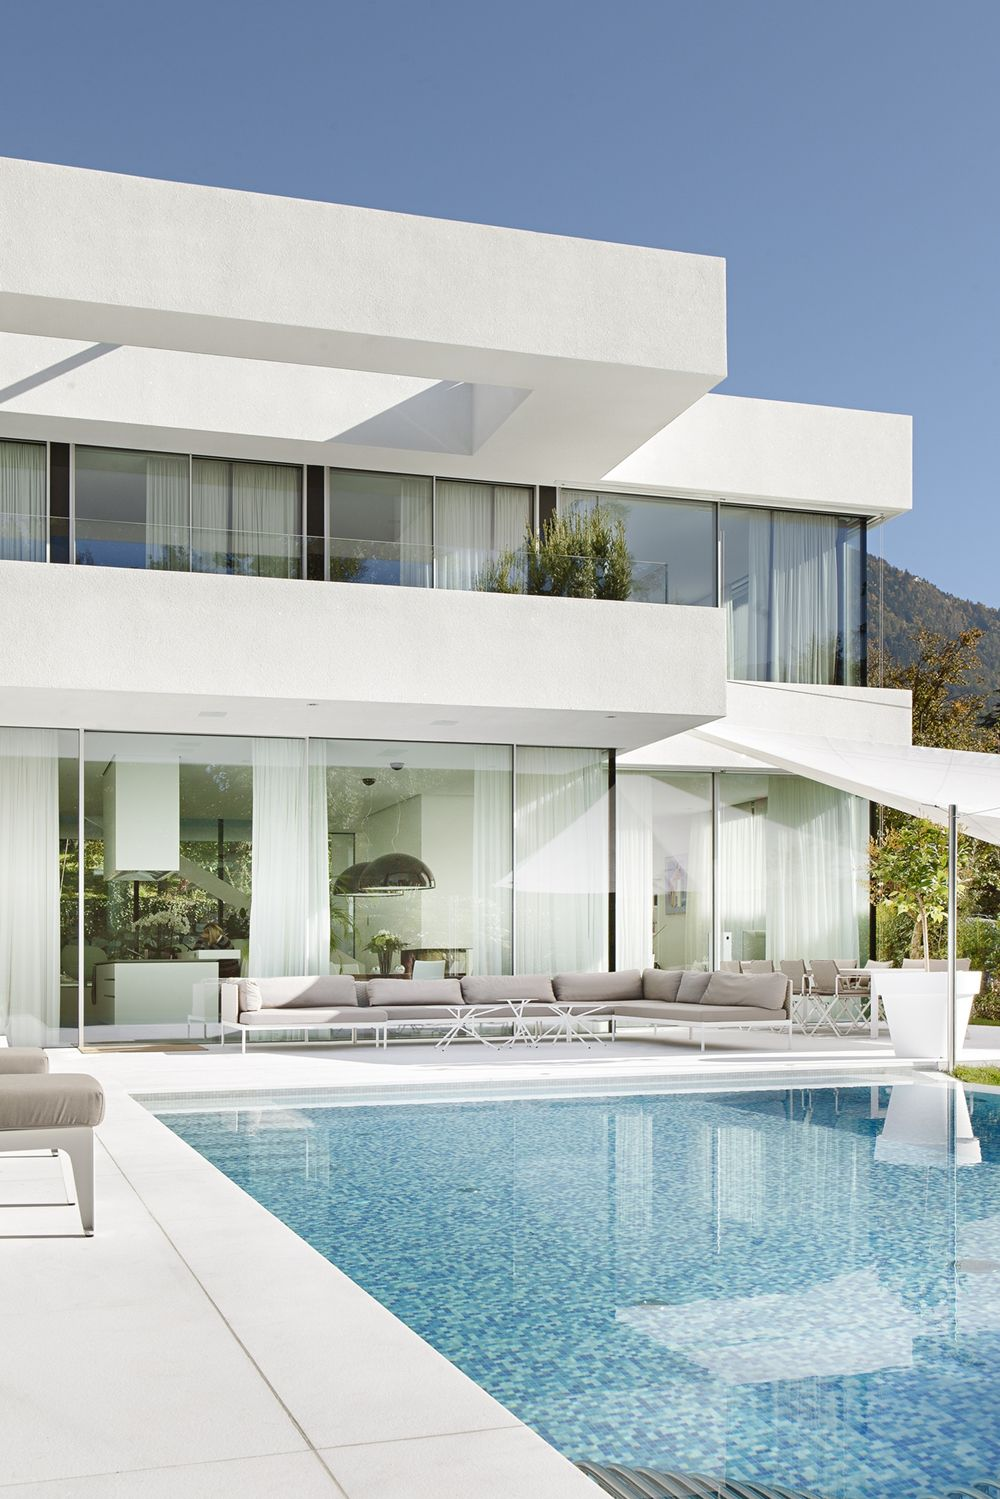 Architecture beast most beautiful houses in the world house m architecture modern house home archibeast design white facade swimmingpool